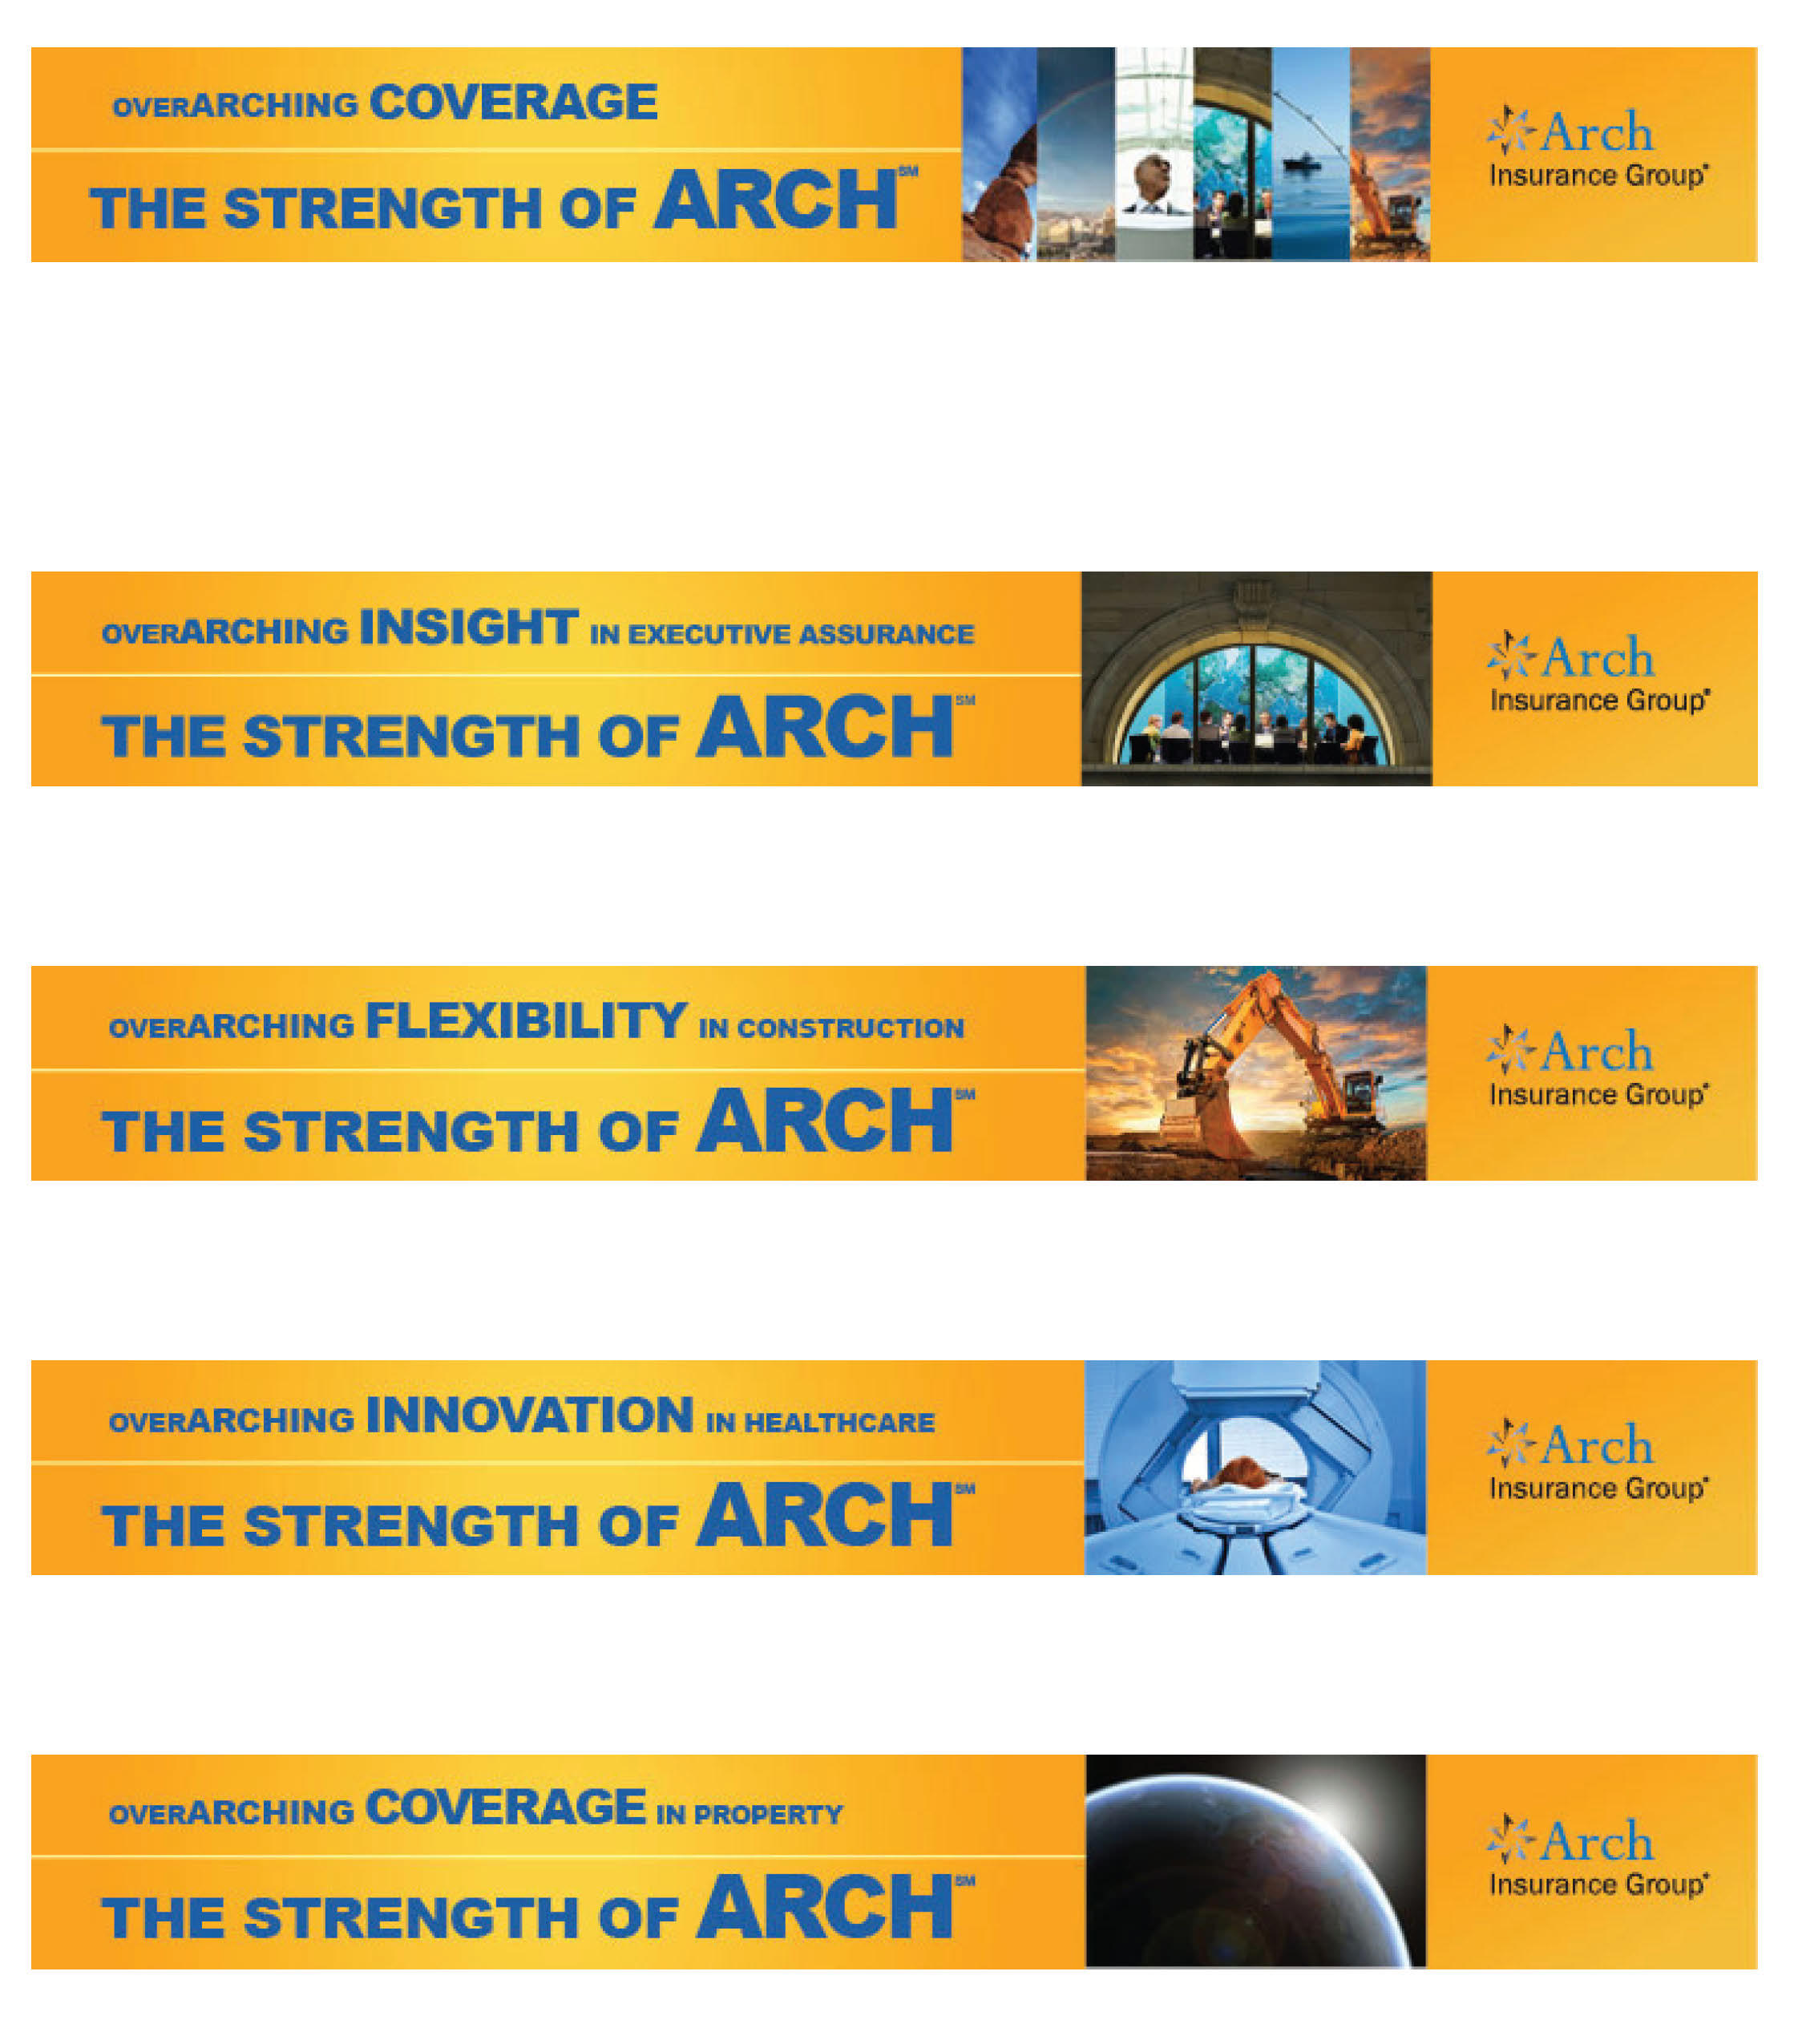 Arch Insurance Group 2013 Advertising and Marketing Campaign_Page_11